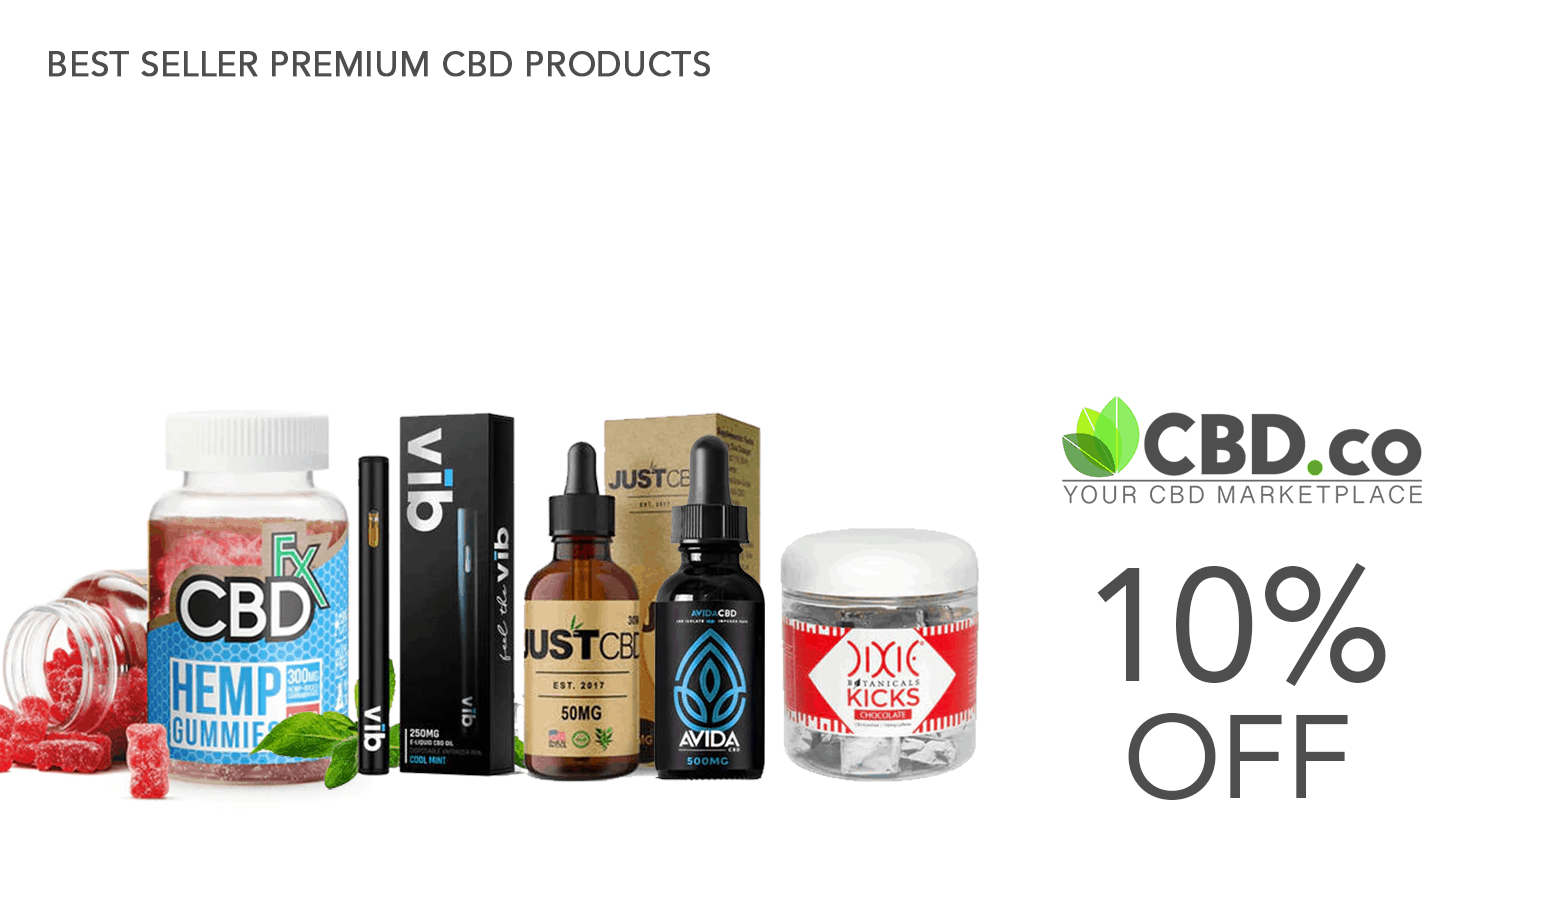 CBD.co Coupon Code Website